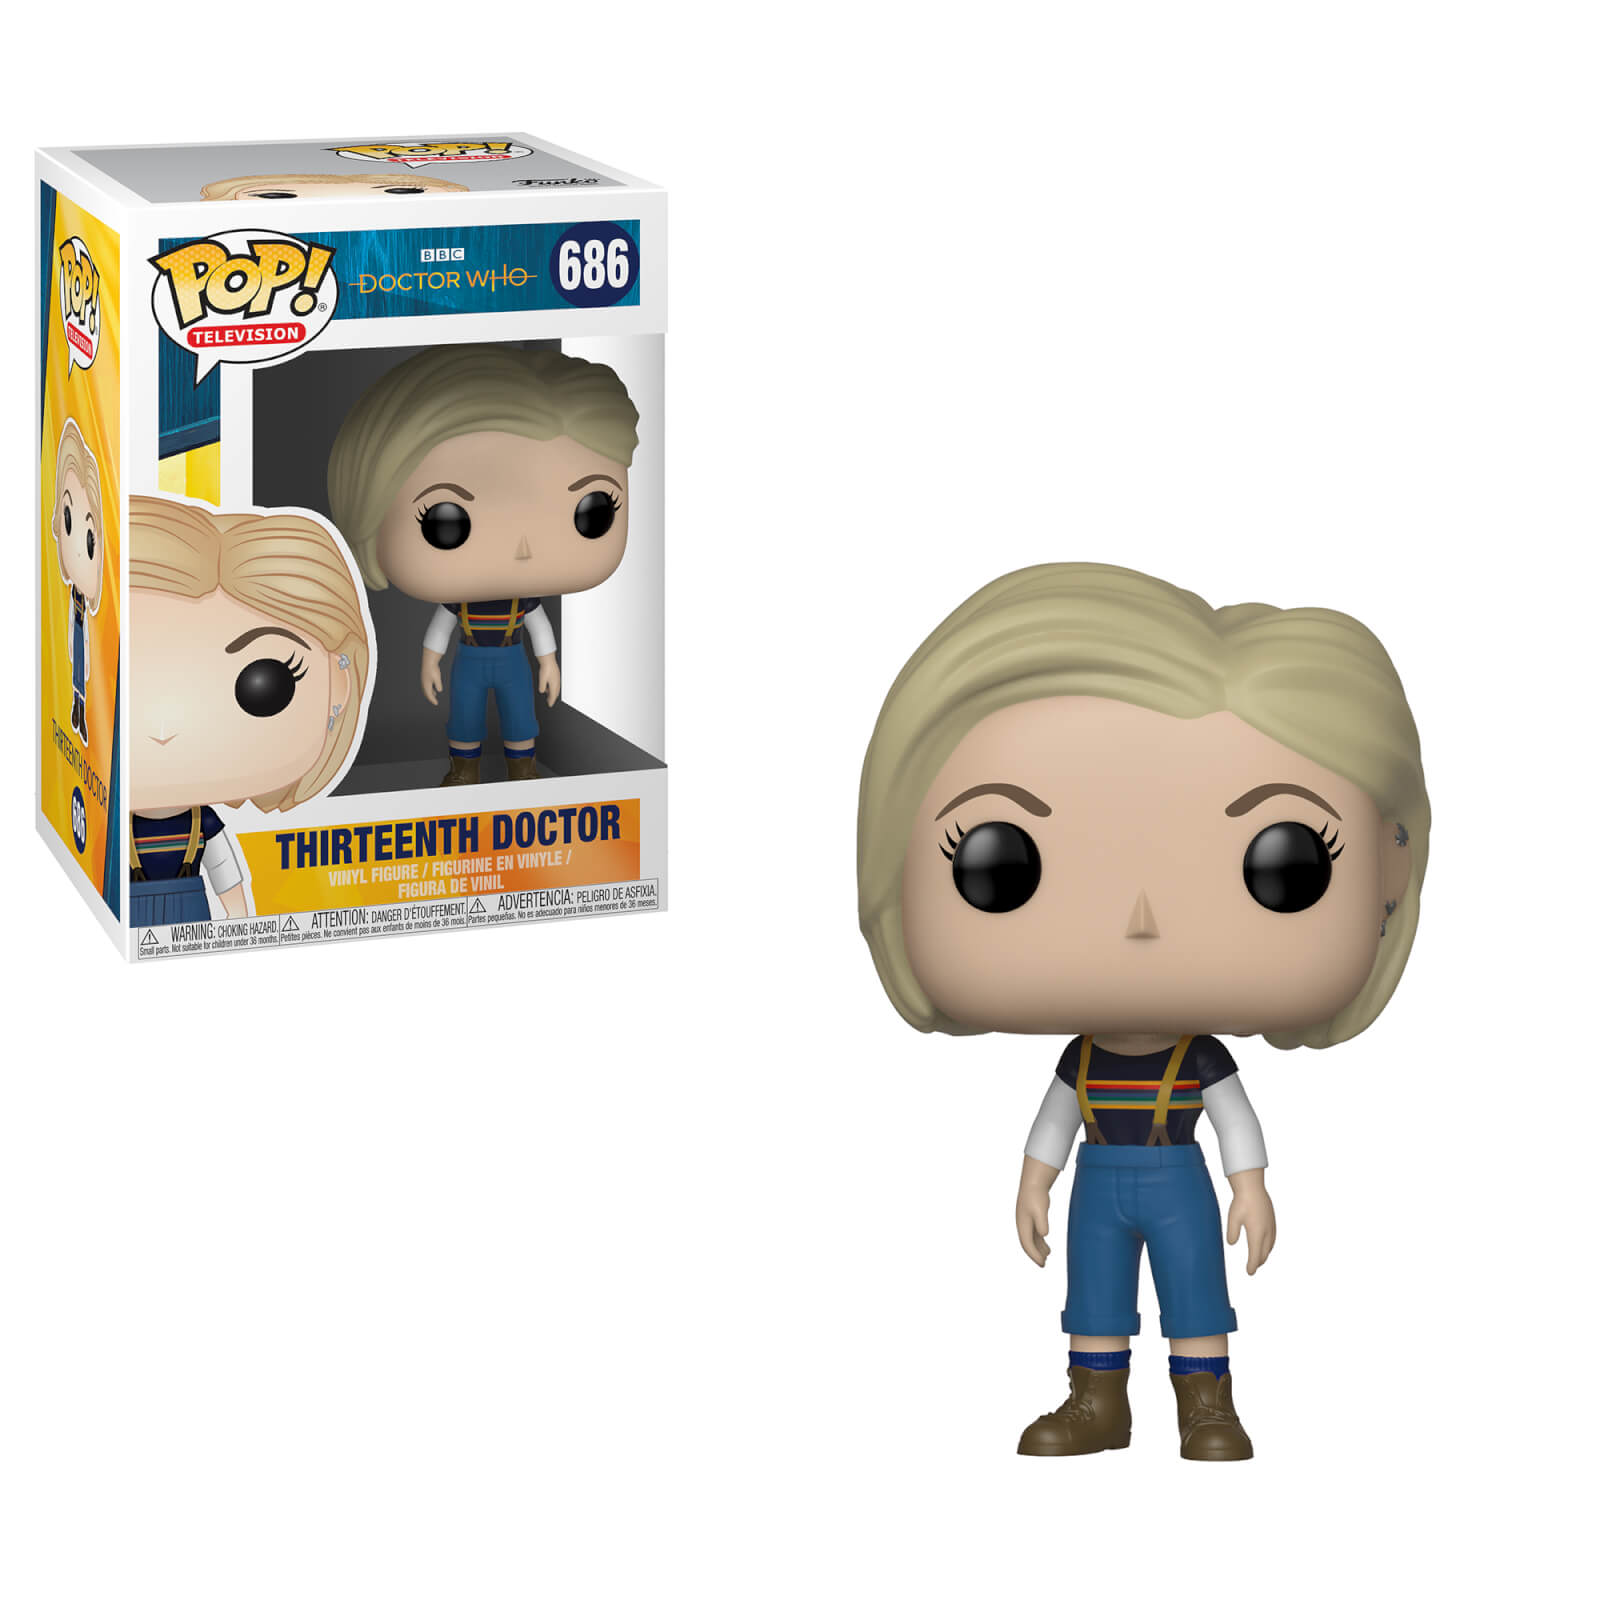 FUNKO Pop! #686 Doctor Who: Thirteenth Doctor